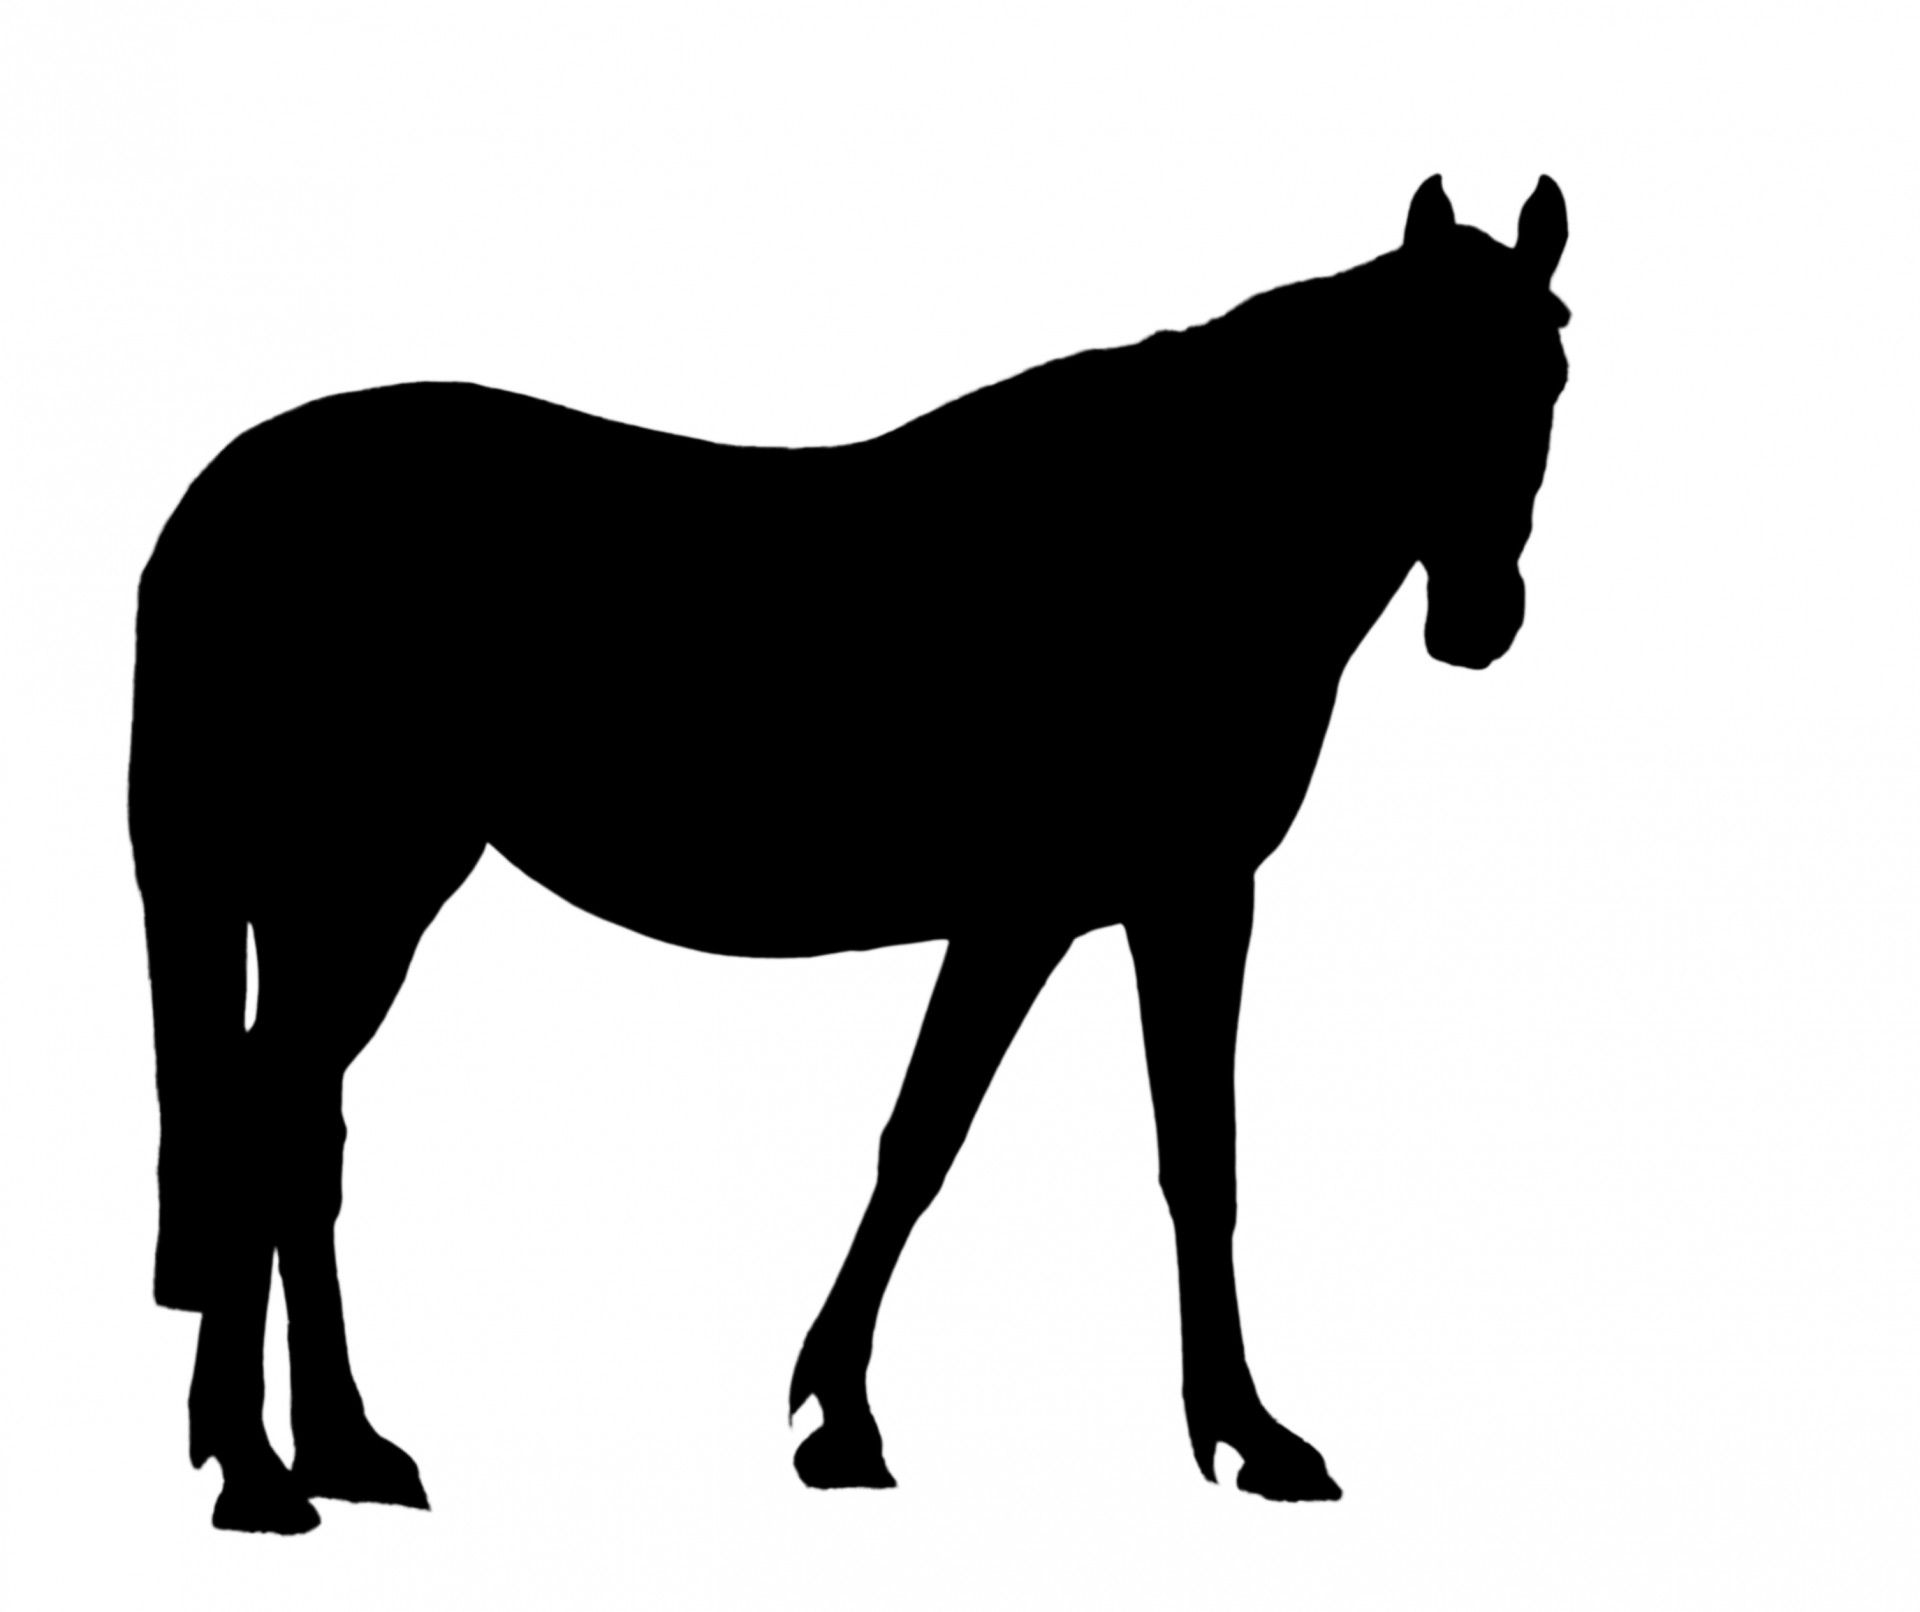 dressage horse silhouette at getdrawings com free for personal use rh getdrawings com